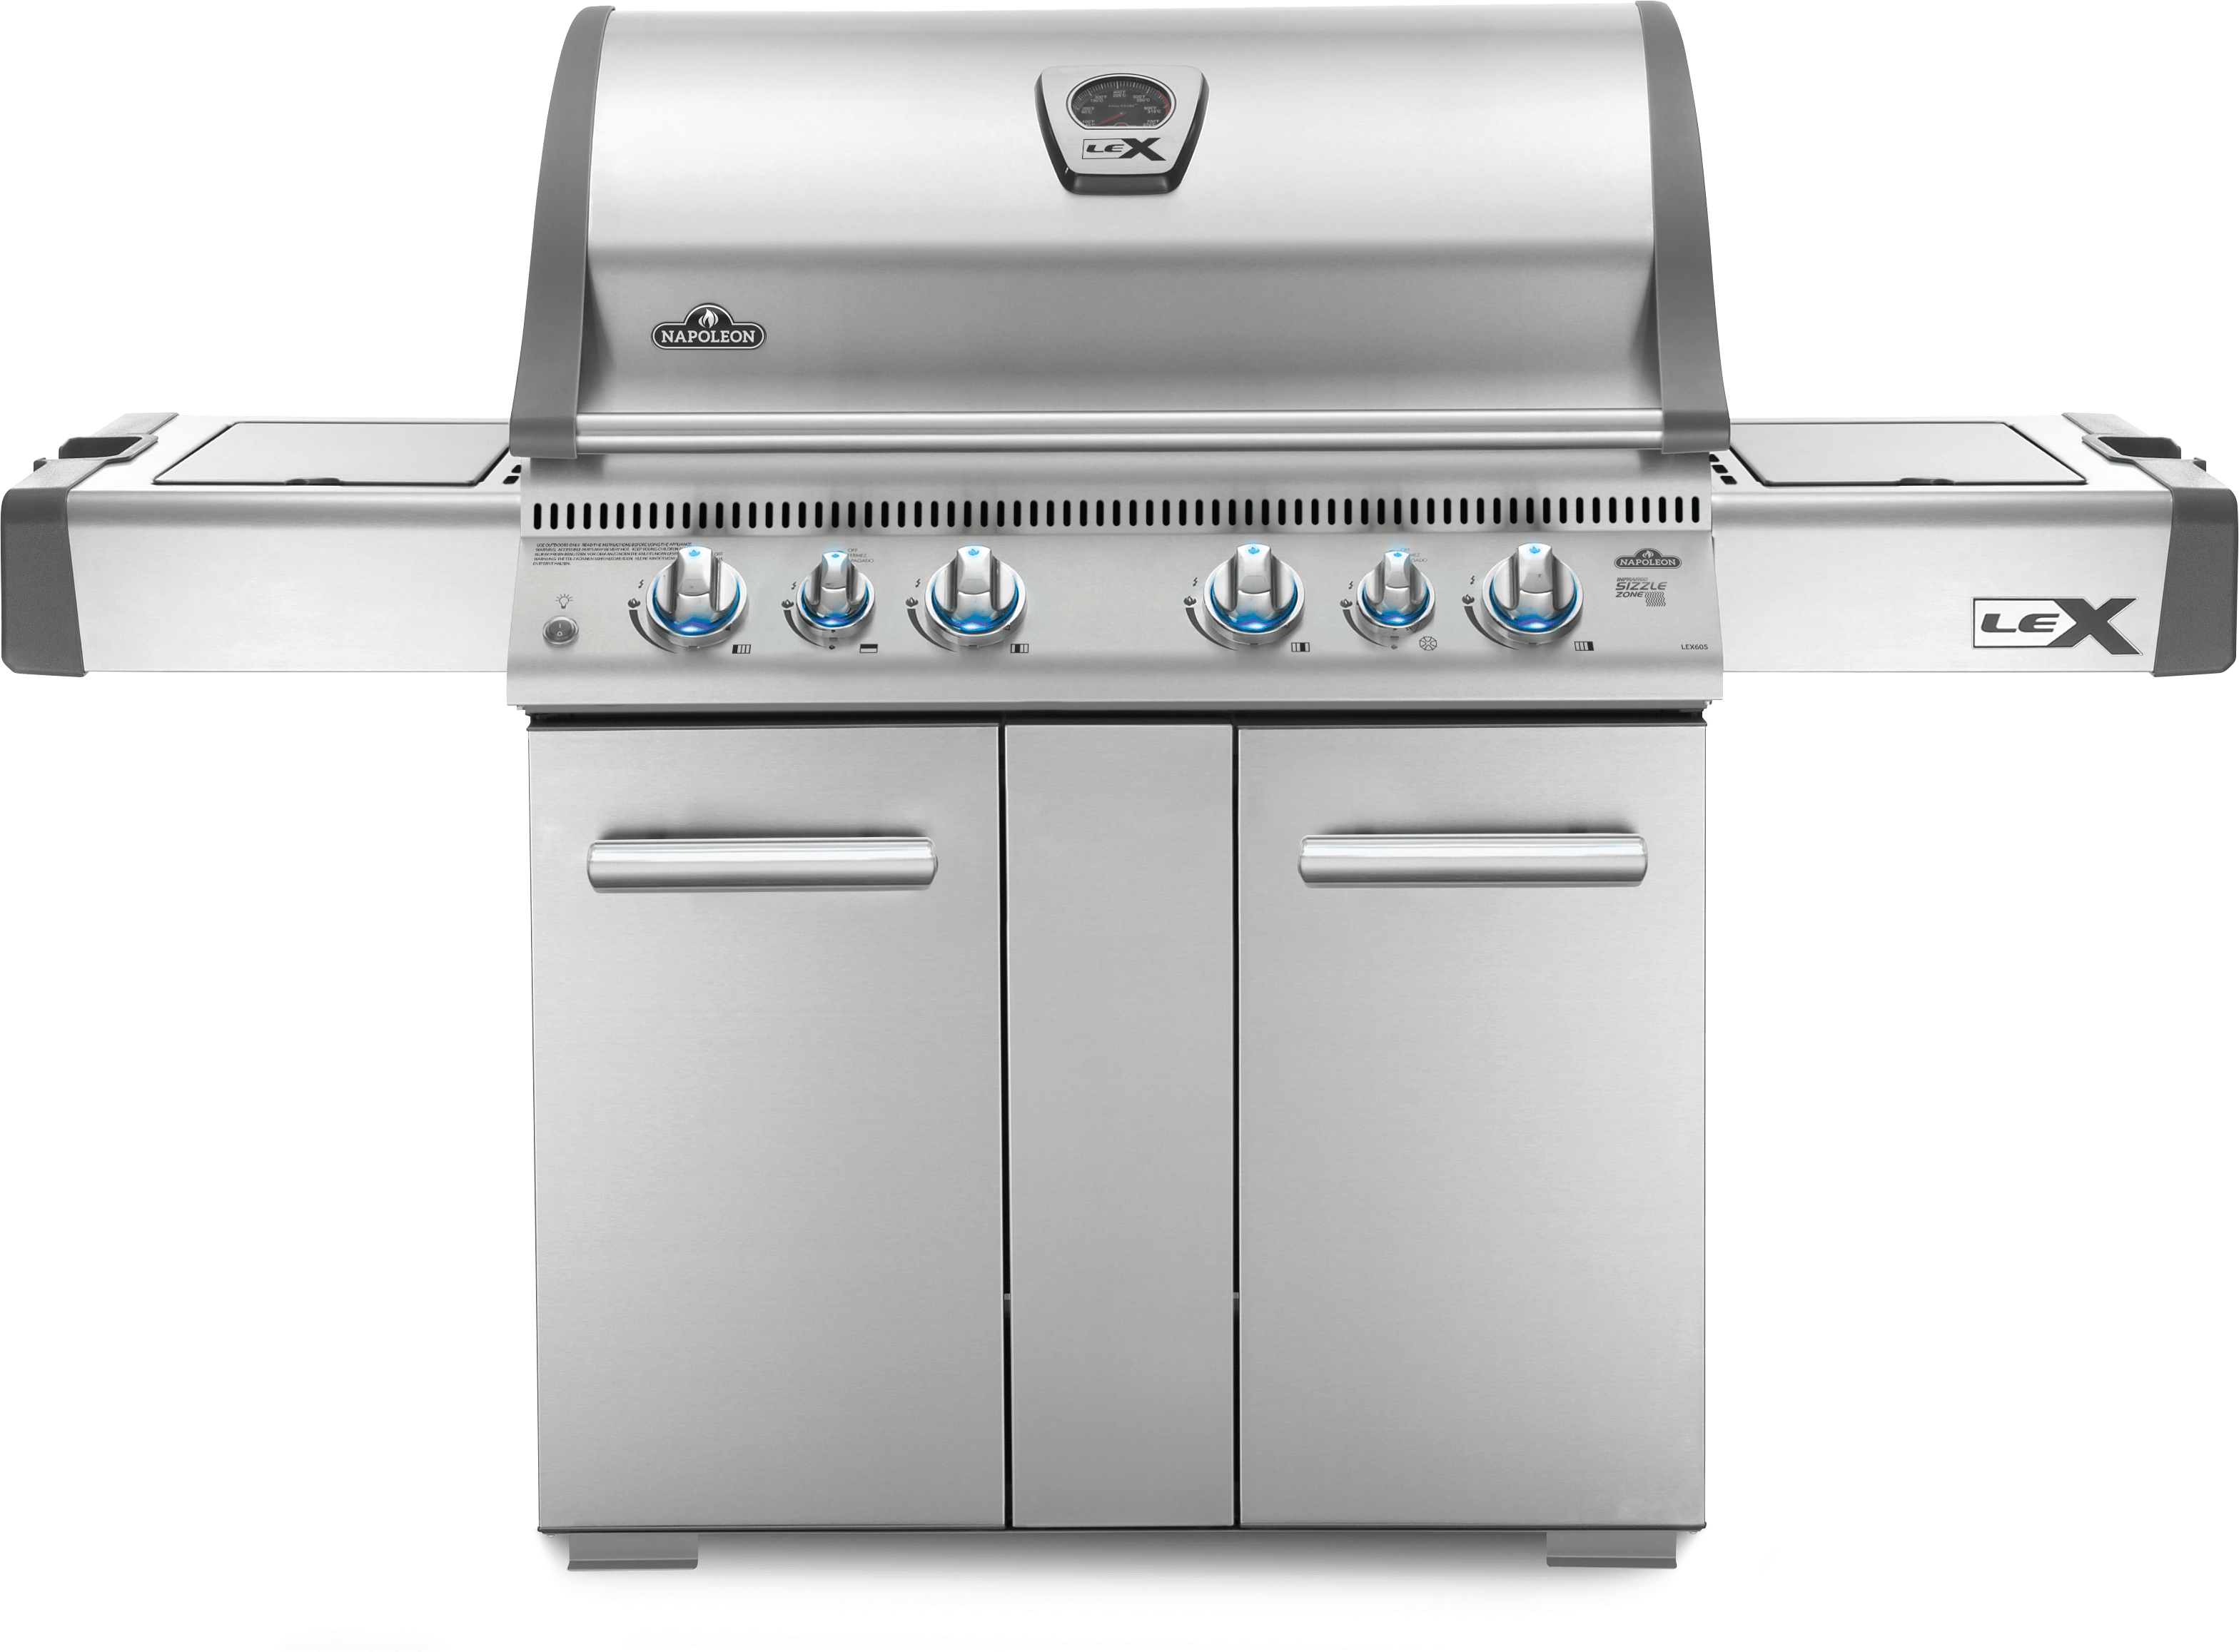 Model: LEX605RSBINSS | Napoleon LEX 605 Natural Gas Grill with Side Burner and Infrared Bottom & Rear Burners, Stainless Steel